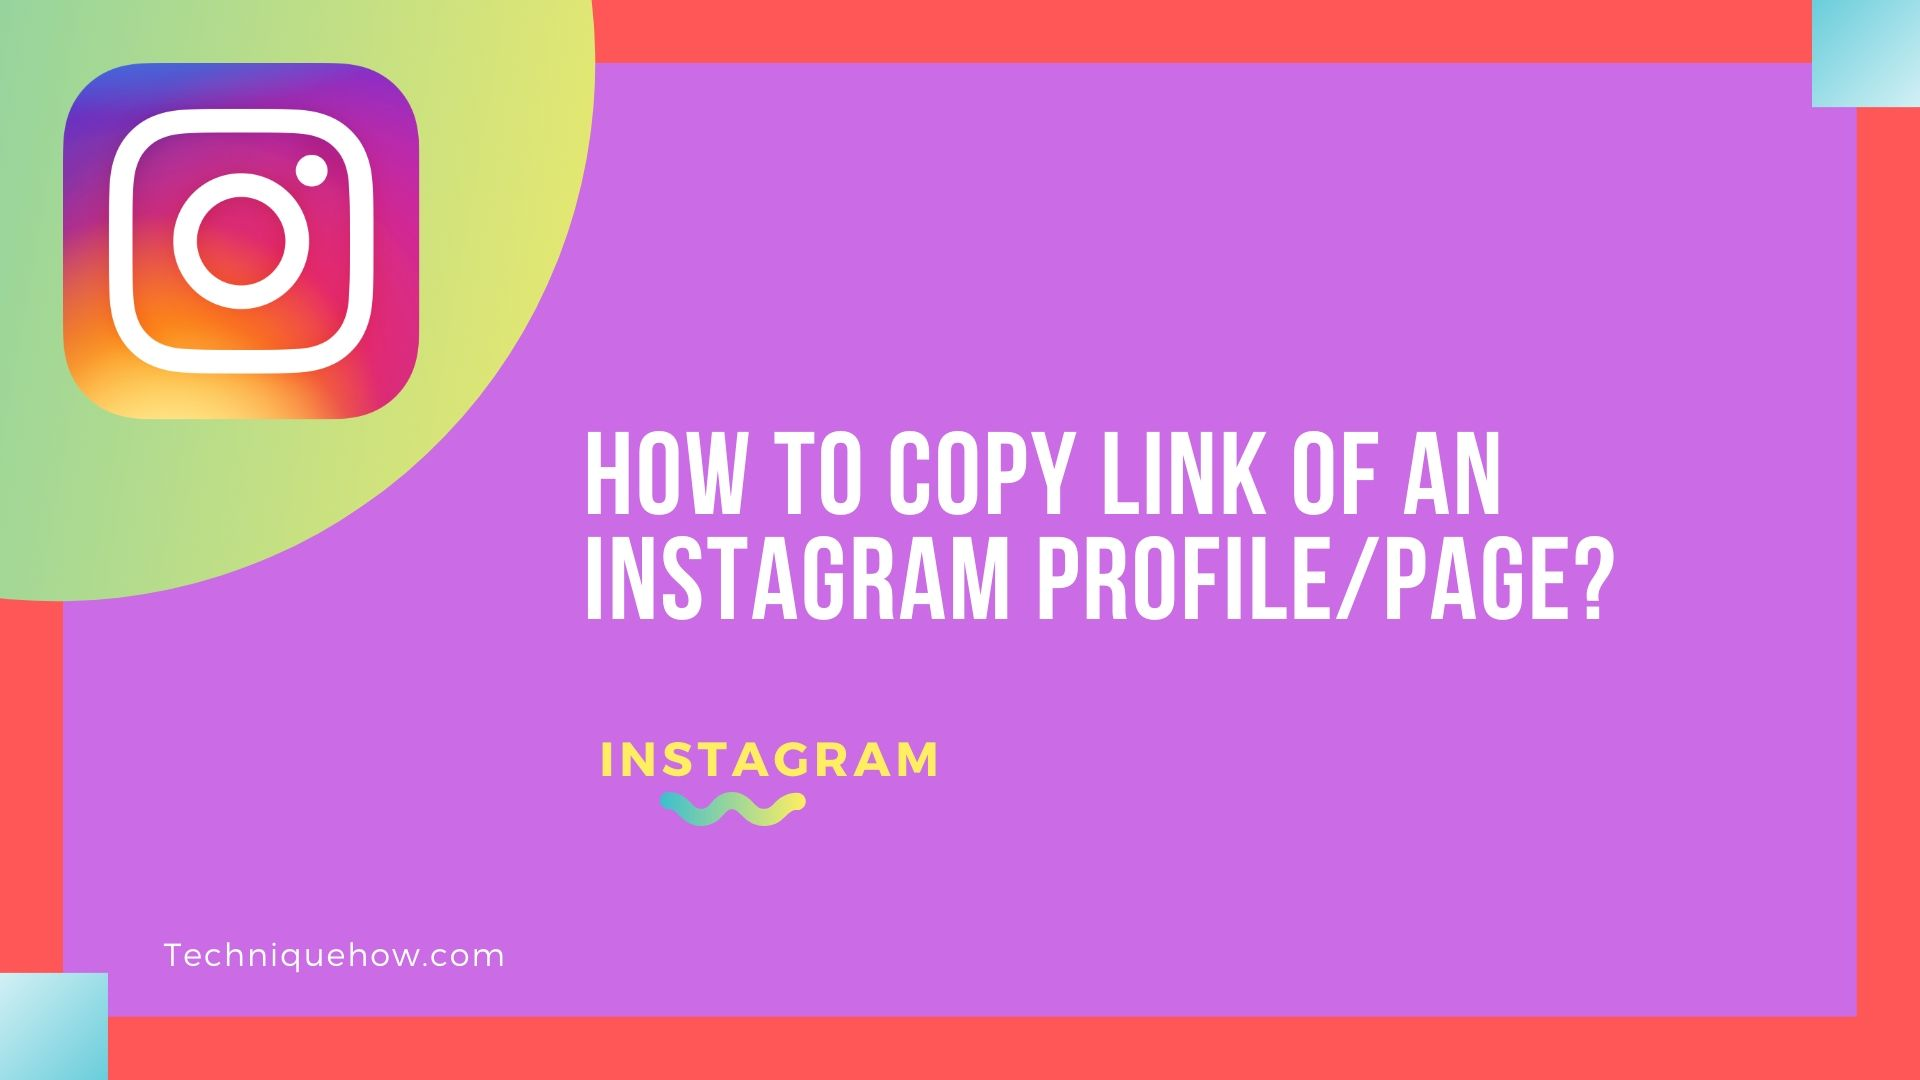 Copy Link of an Instagram Profile